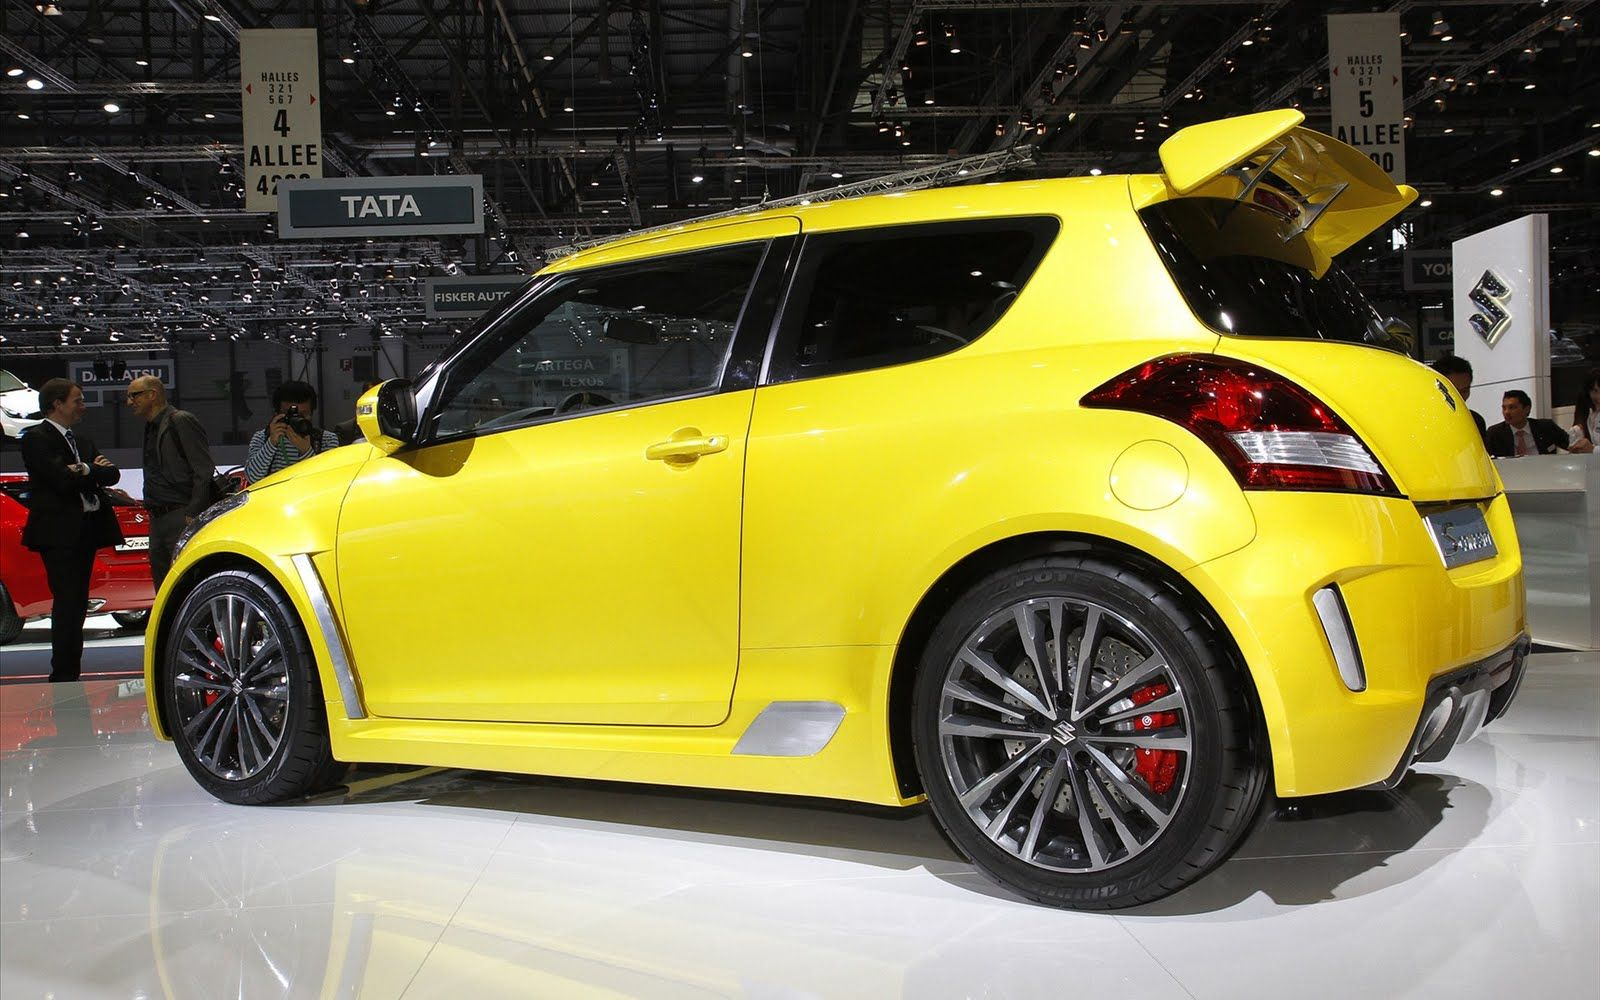 2011 Suzuki Swift Looks Like Mini Carloversph Cars Mini